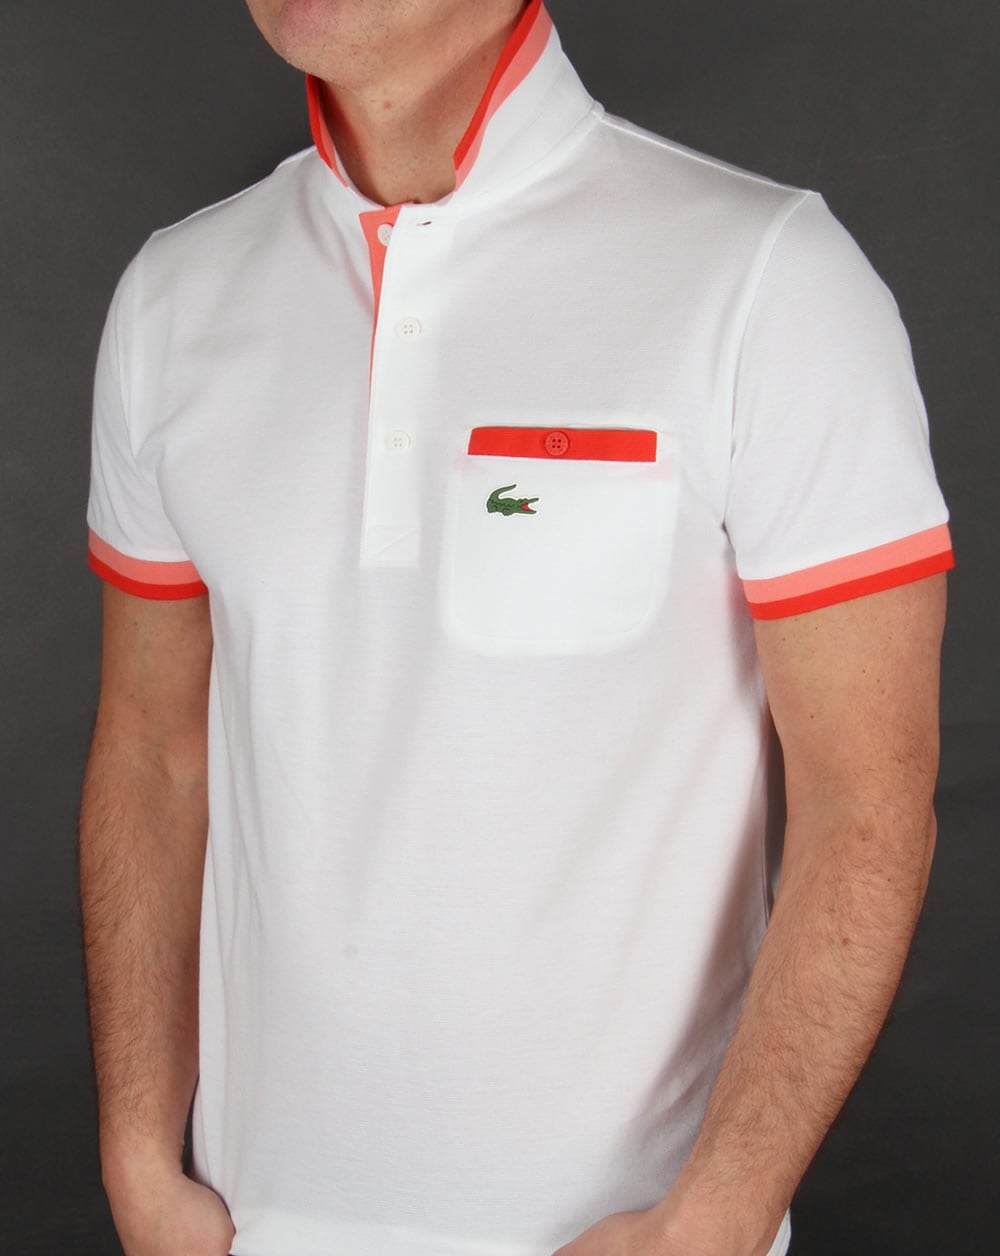 Lacoste pocket detail polo shirt white red men 39 s for Lacoste poloshirt weiay